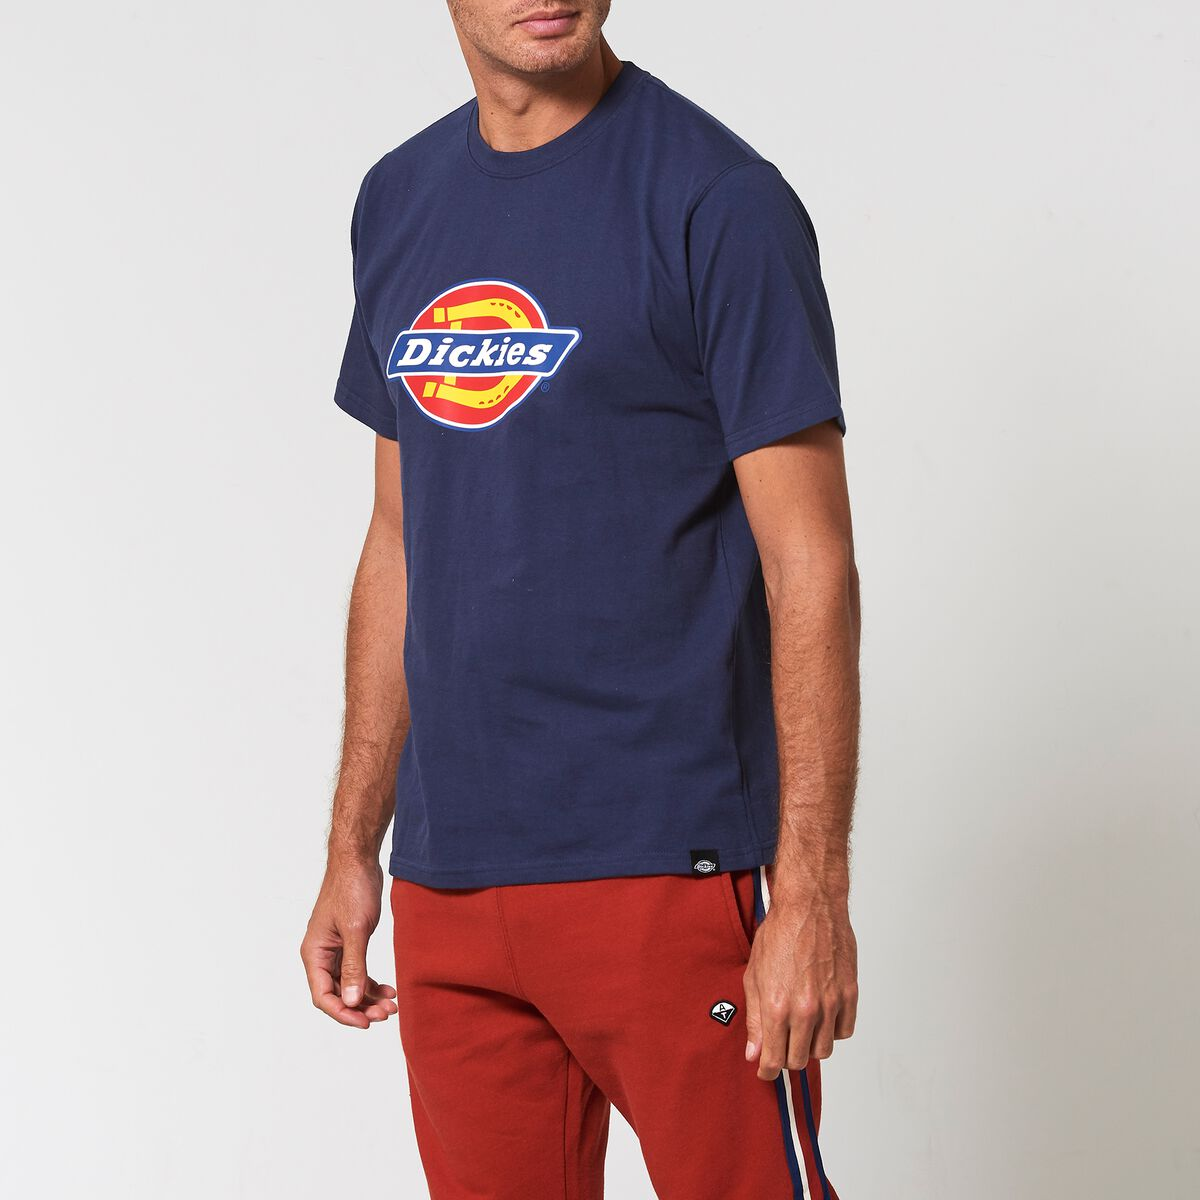 68409c6b0c6 Men Horseshoe Dickies tee Blue Buy Online